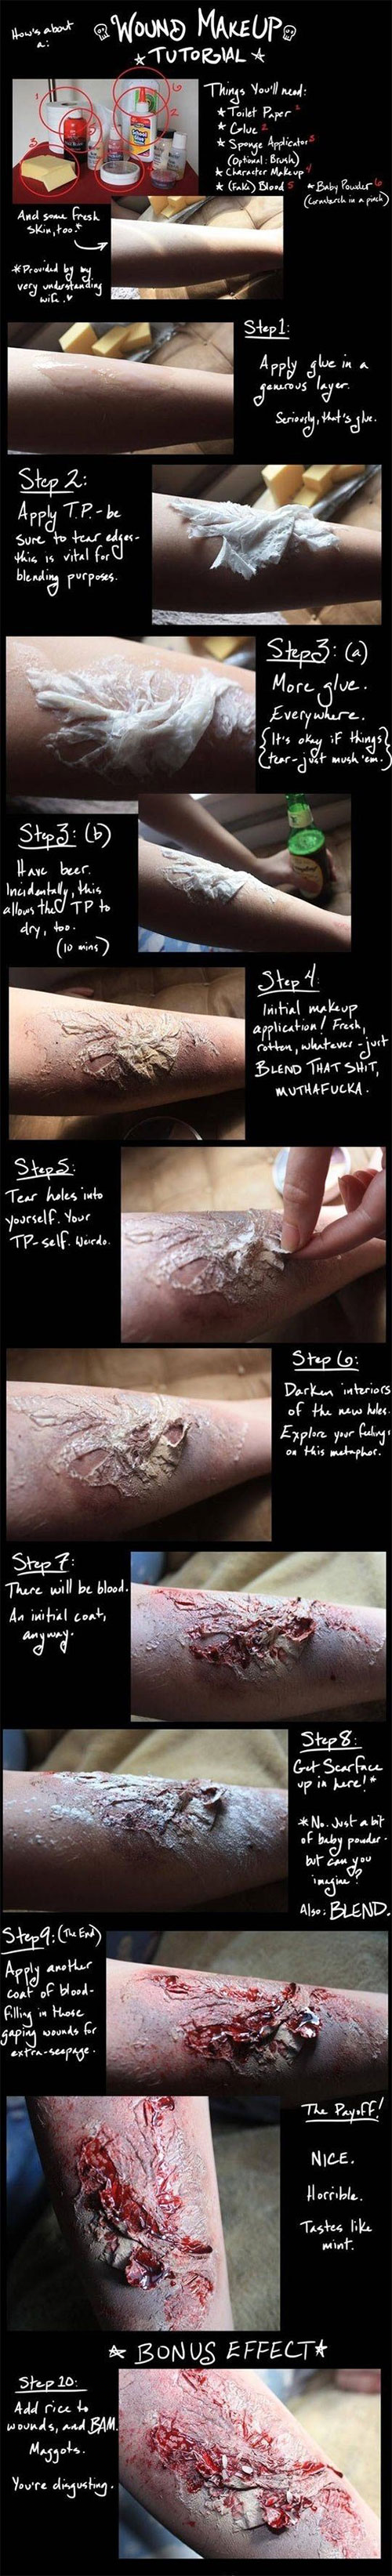 15-Step-By-Step-Halloween-Make-Up-Tutorials-For-Beginners-Learners-2014-15